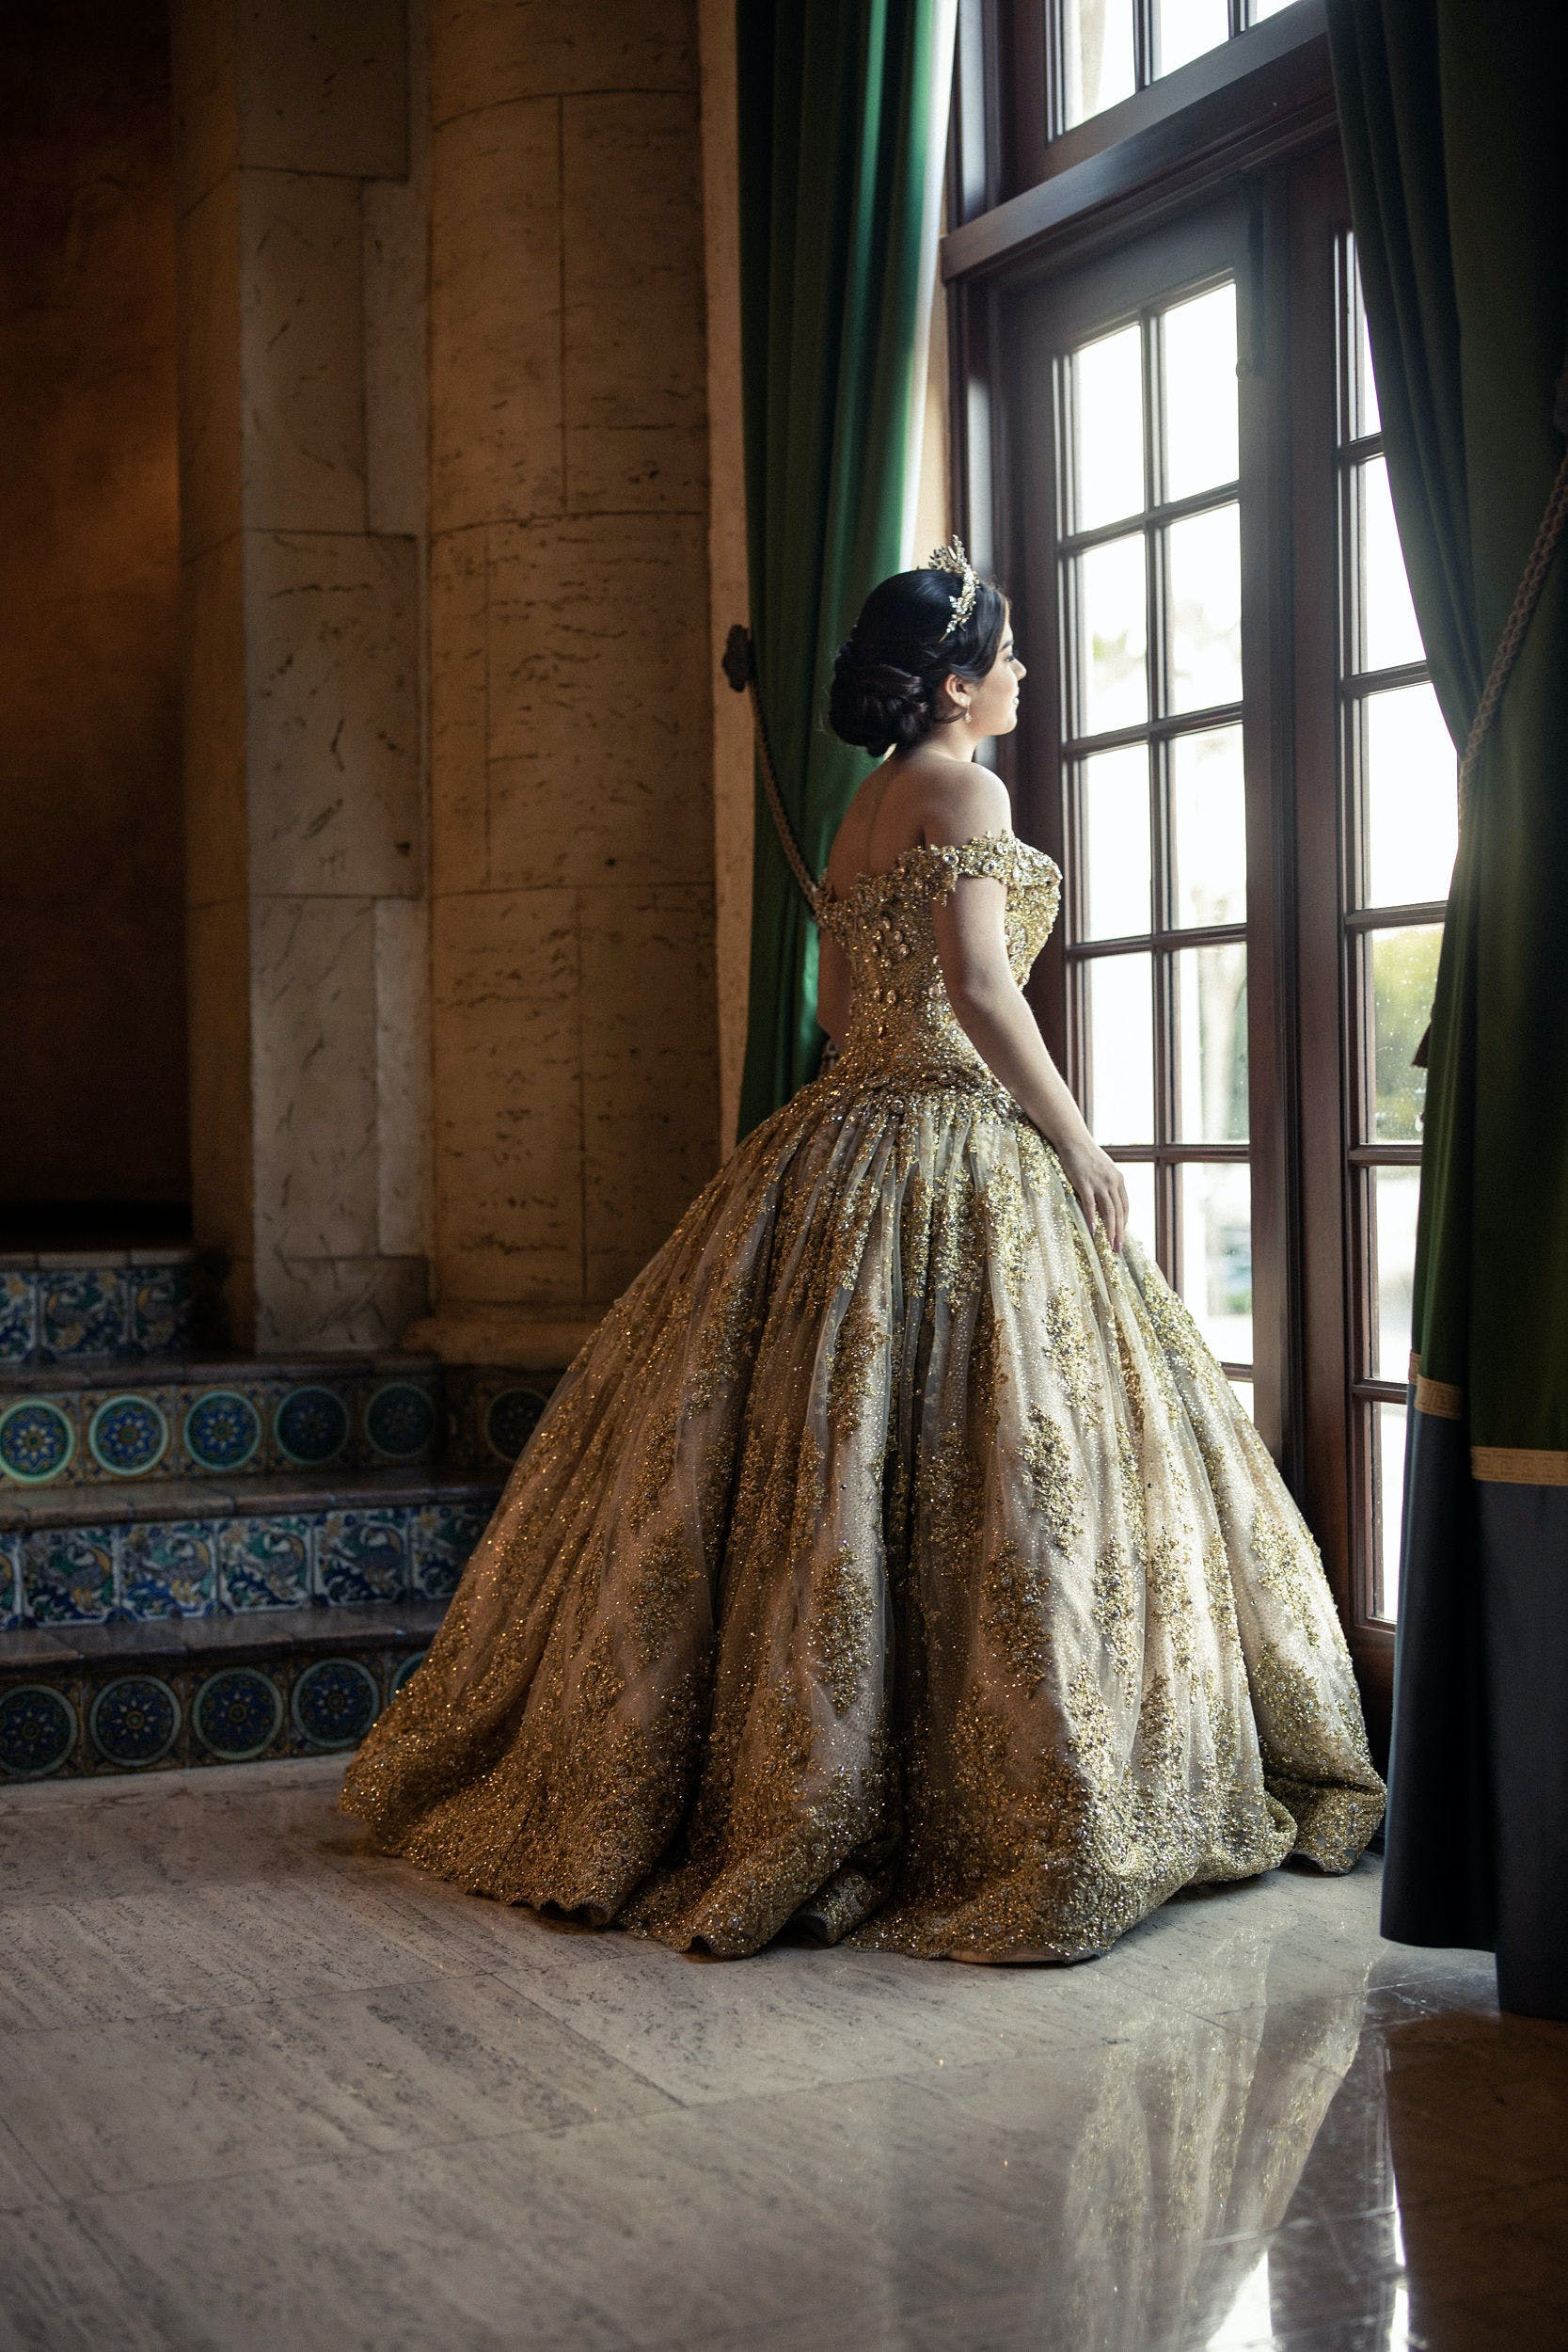 Quinceañera in gold ball gown holds aside velvet drape to look outside floor-to-ceiling window | PartySlate